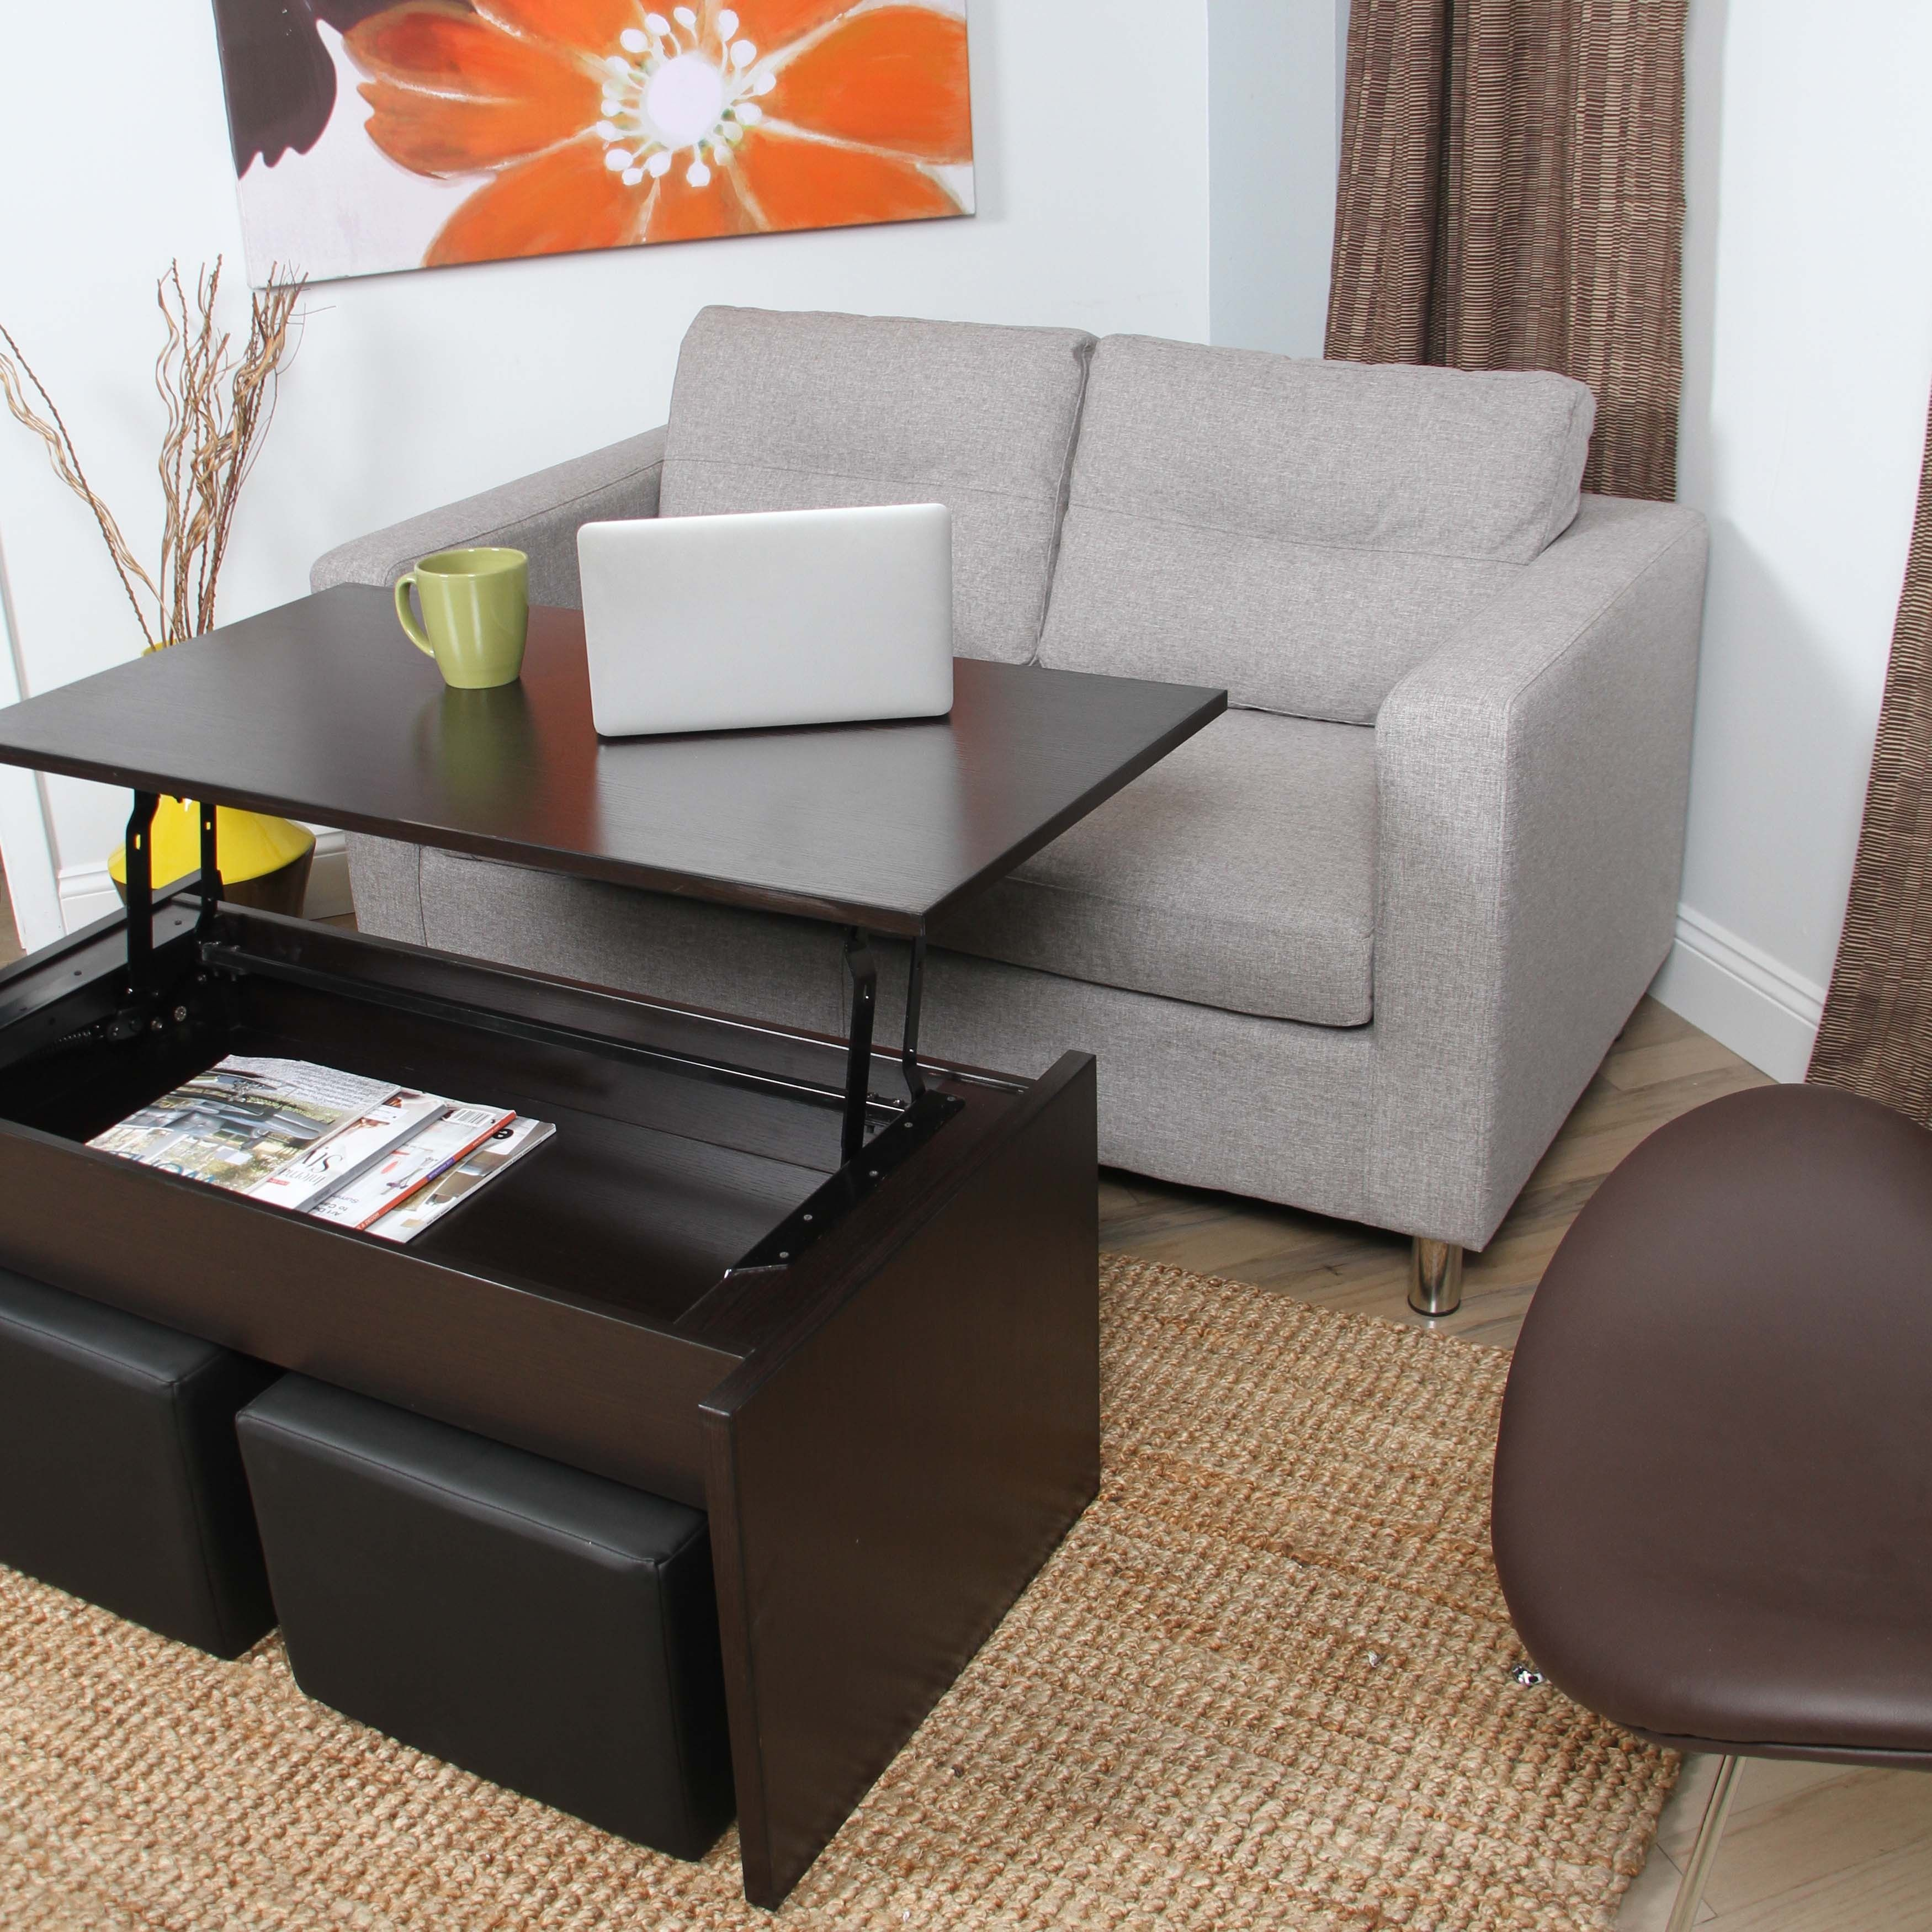 Convertible Couch Coffee Table - Add a unique and functional accent to your home with this creative coffee table this